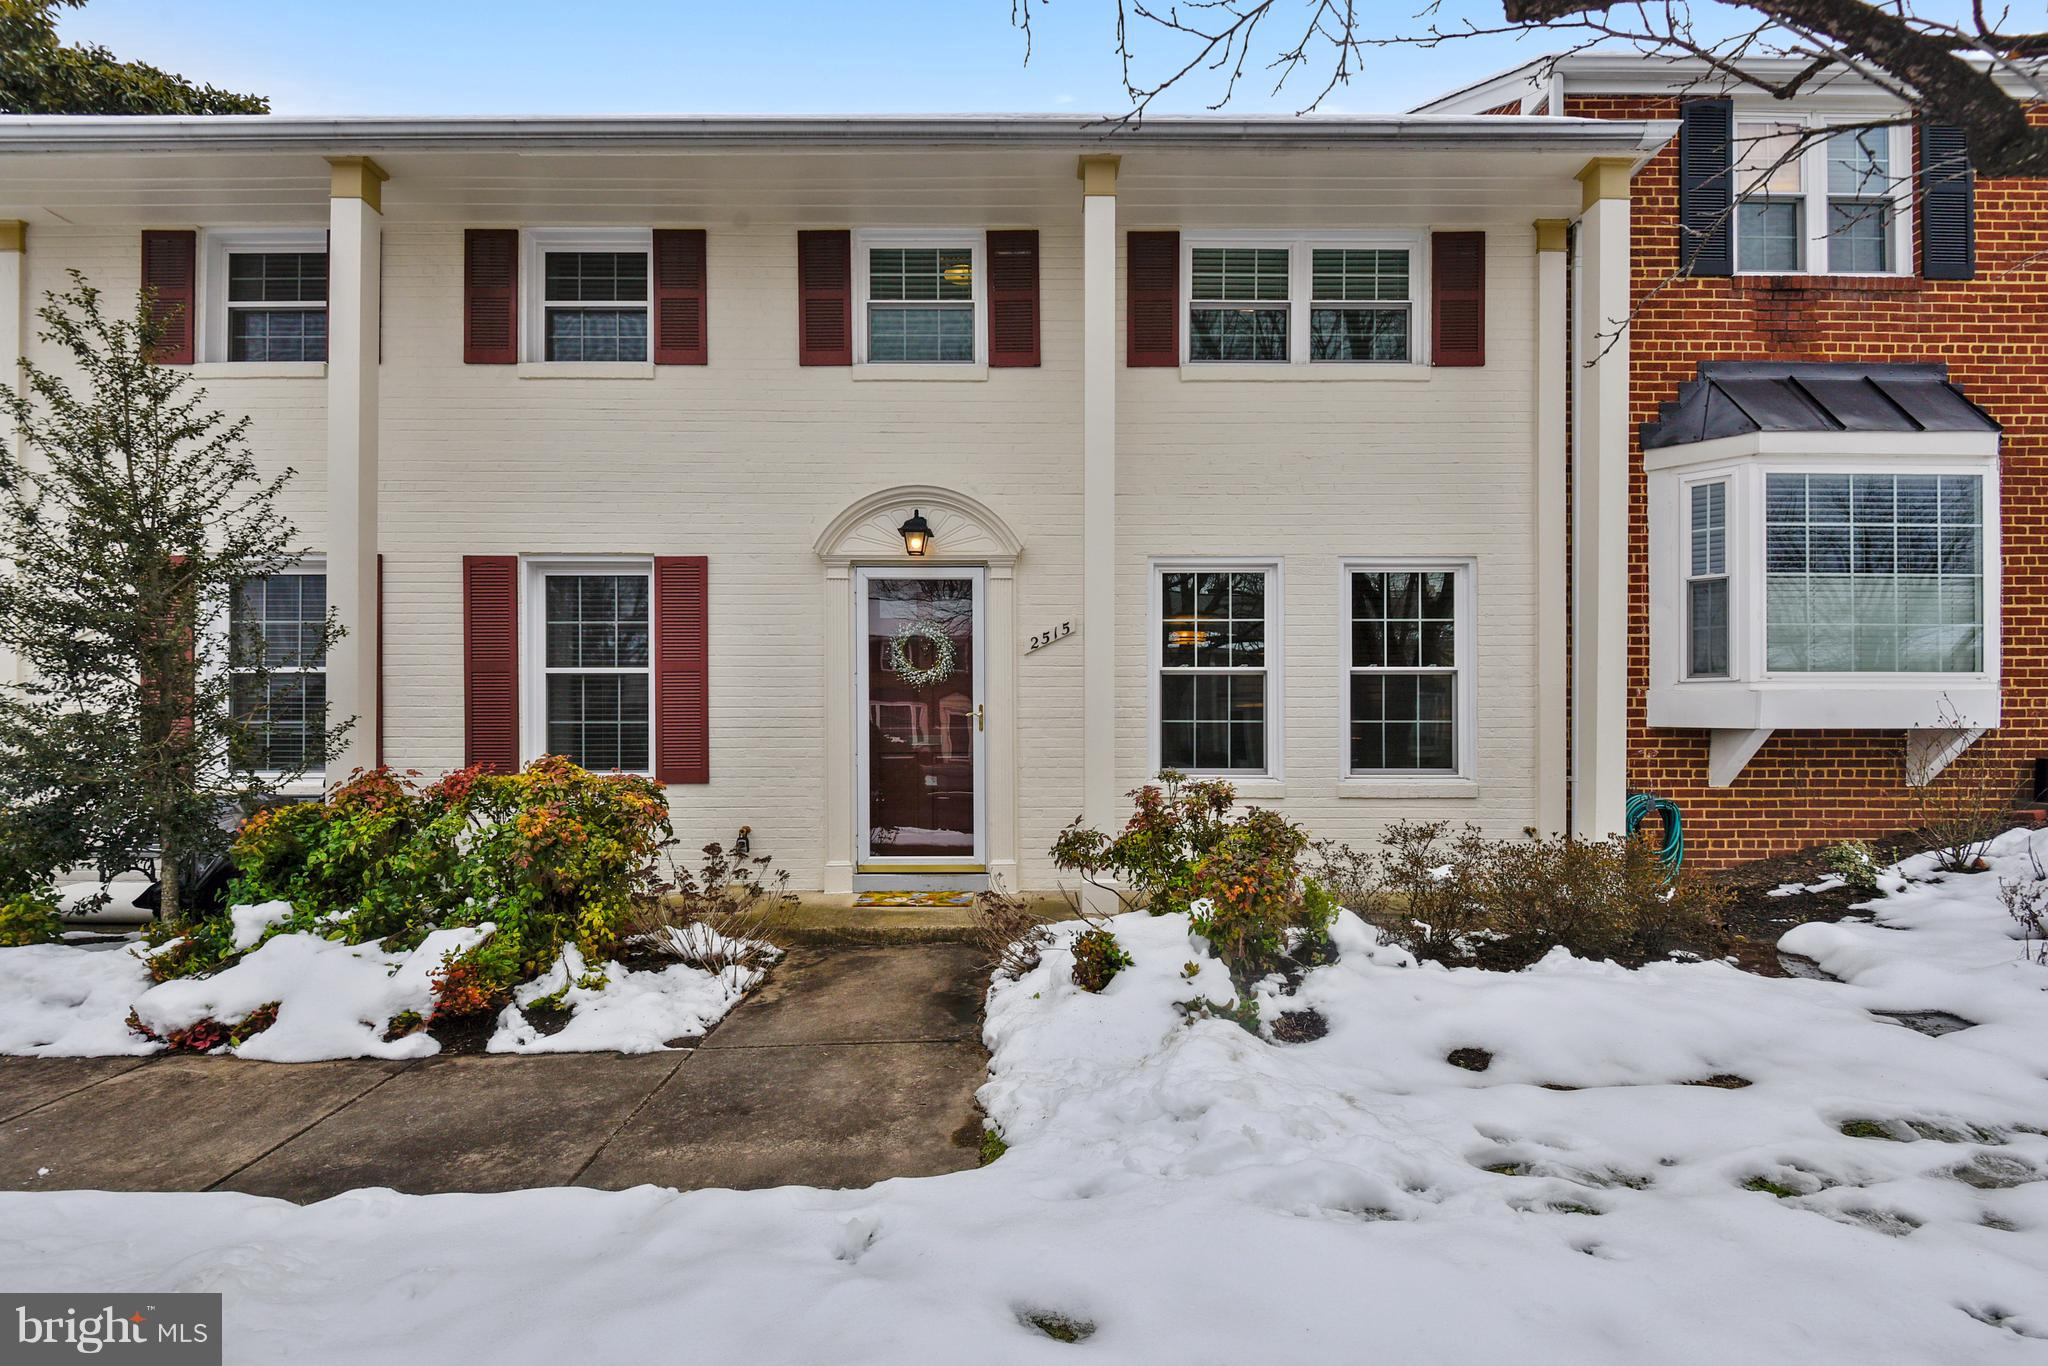 Super cute! Recently updated.  2 level townhouse in Fairlington Towne.  3 bedrooms up. Beautiful kitchen-stainless, granite, gas cooking.  Cute updated 2nd floor full bath. main floor half bath. Hardwoods thru out. Fenced  patio backs to large grassy area.